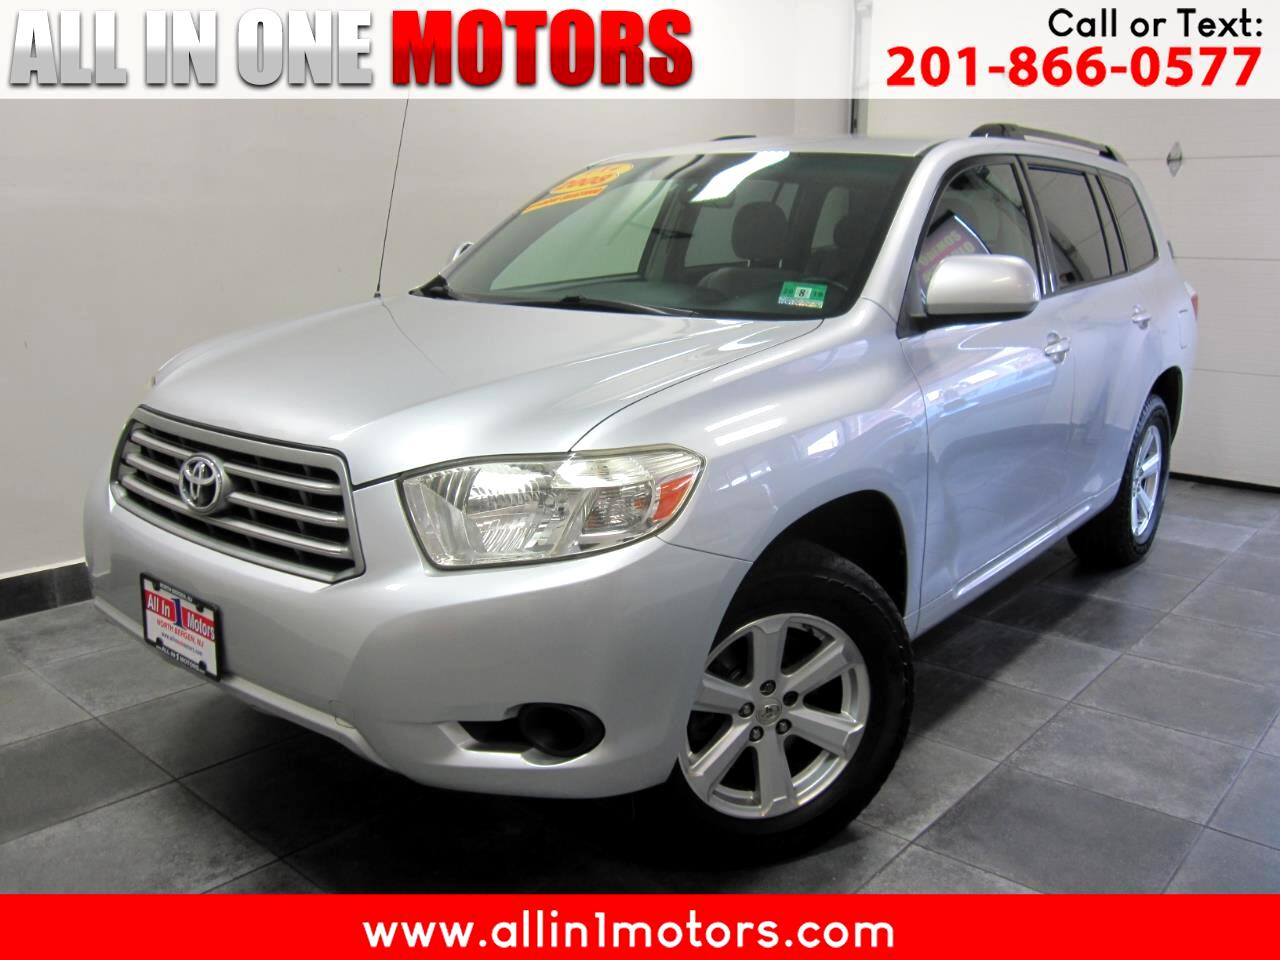 2008 Toyota Highlander 4WD 4dr Base (Natl)